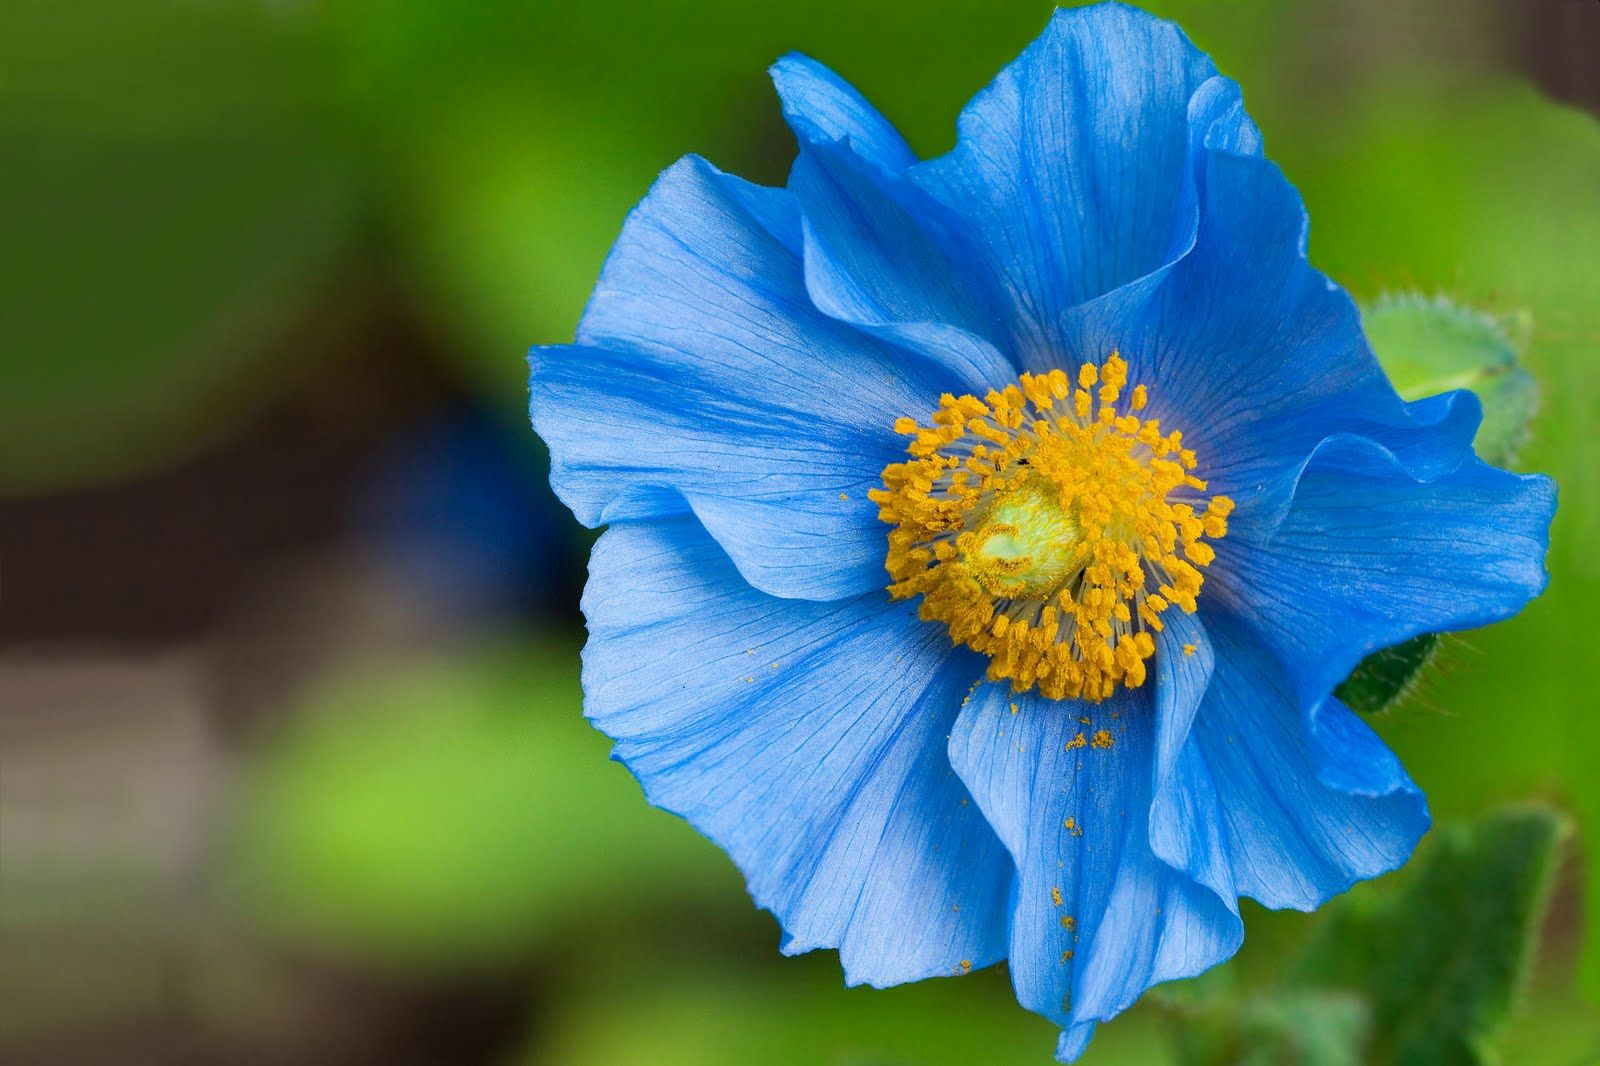 Blue Poppy Very Pretty Wedding Bells 3 Pinterest Blue Poppy